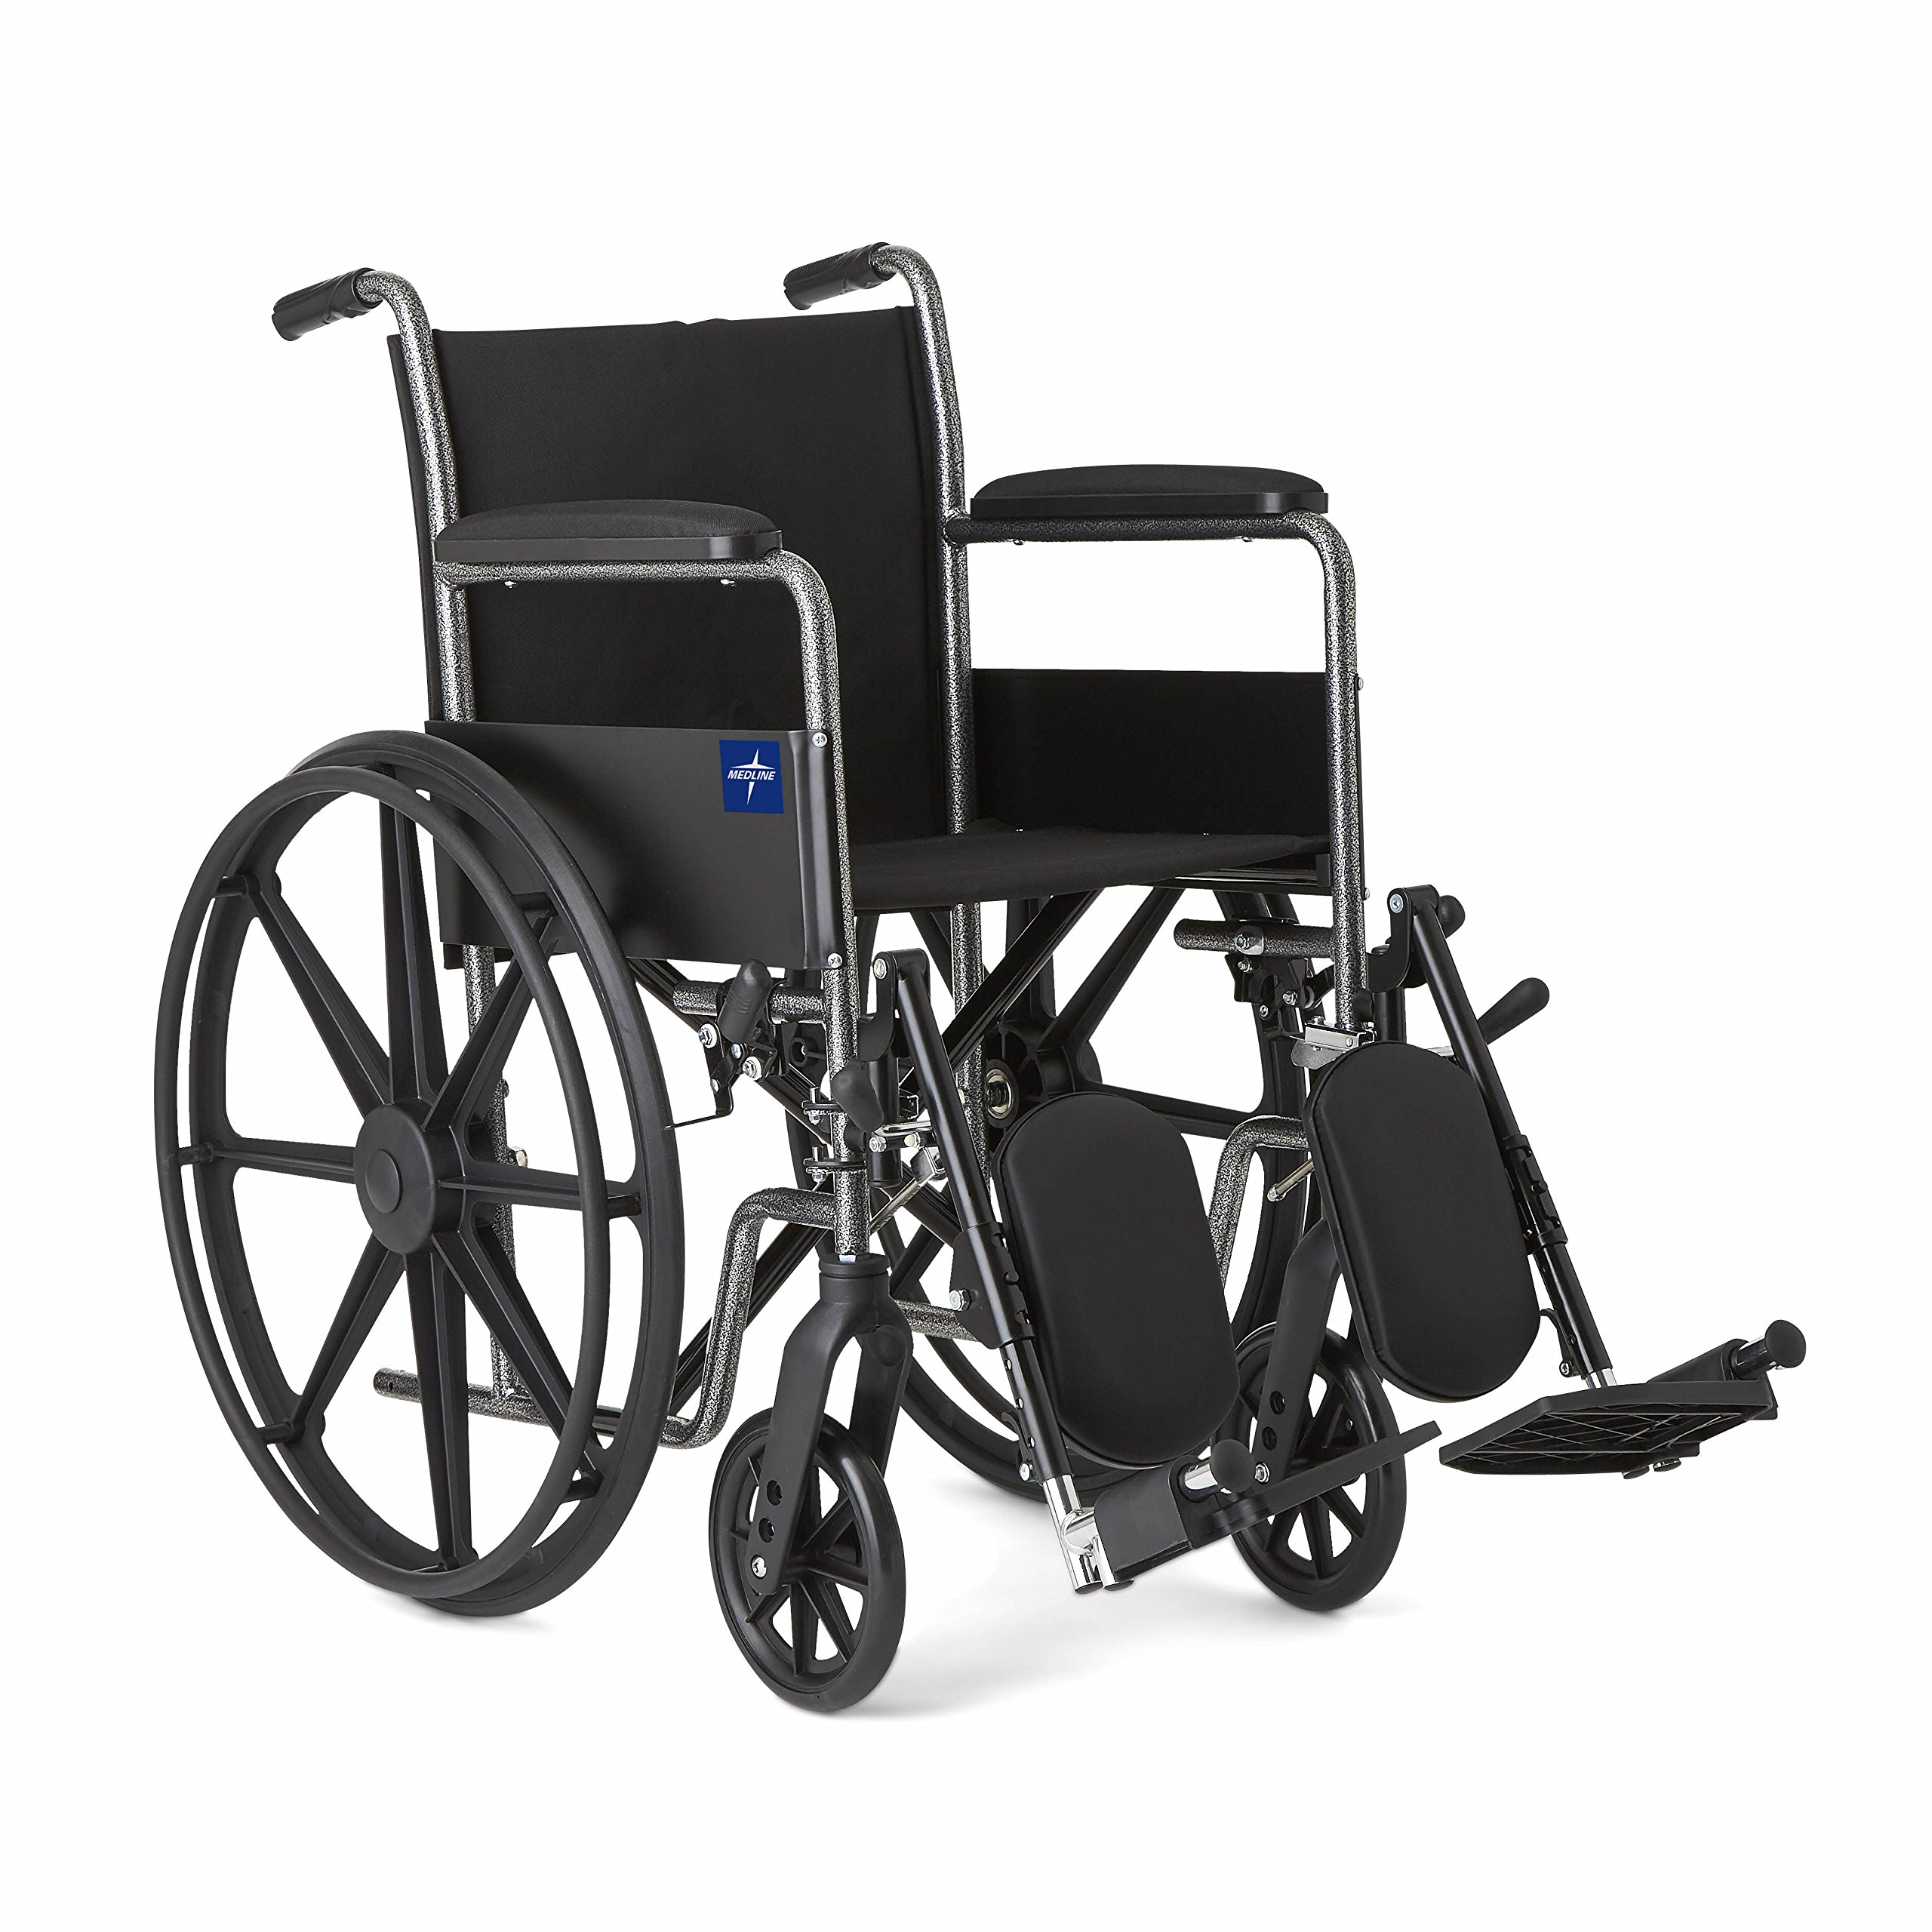 Medline Comfort Driven Wheelchair with Full-length Arms and Elevating Leg Rests for Extra Comfort, 18'' Seat by Medline